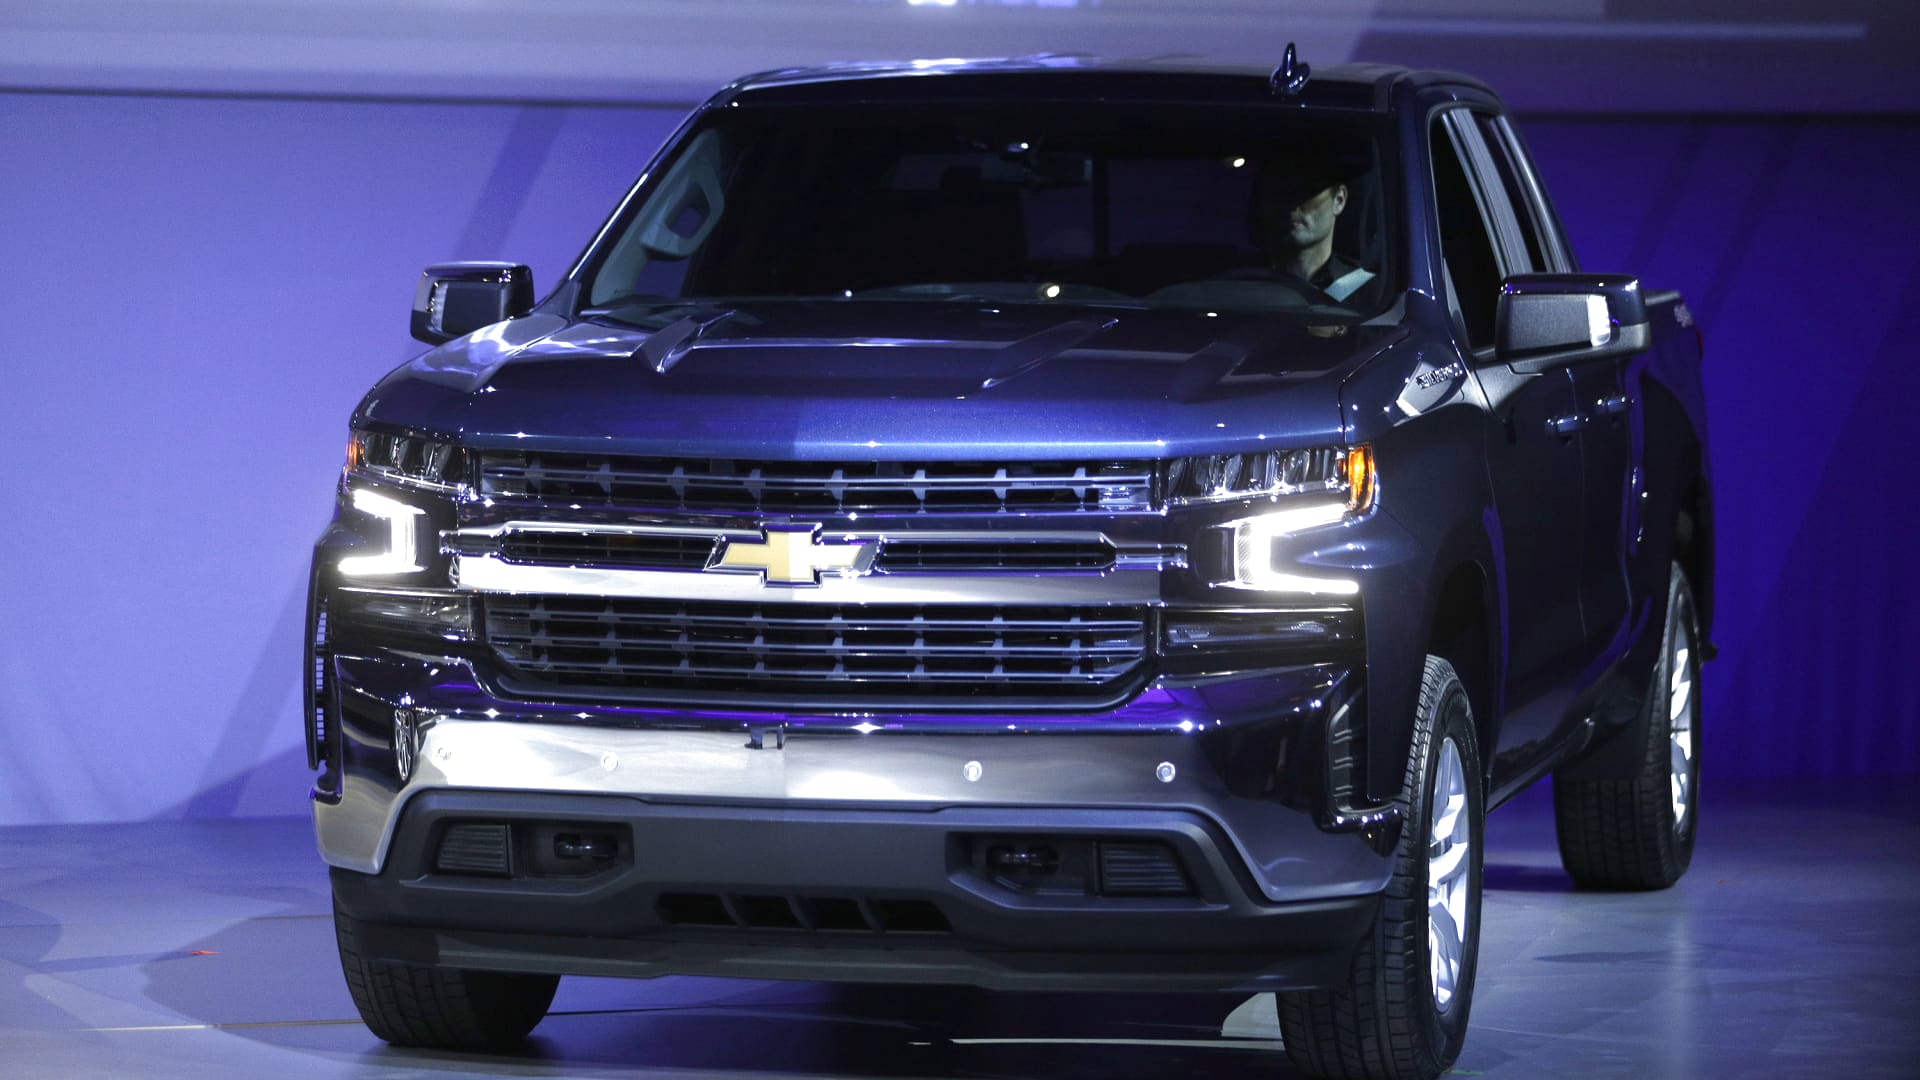 The new 2019 Chevrolet Silverado 1500 makes its official debut at the 2018 North American International Auto Show January 13, 2018 in Detroit, Michigan.